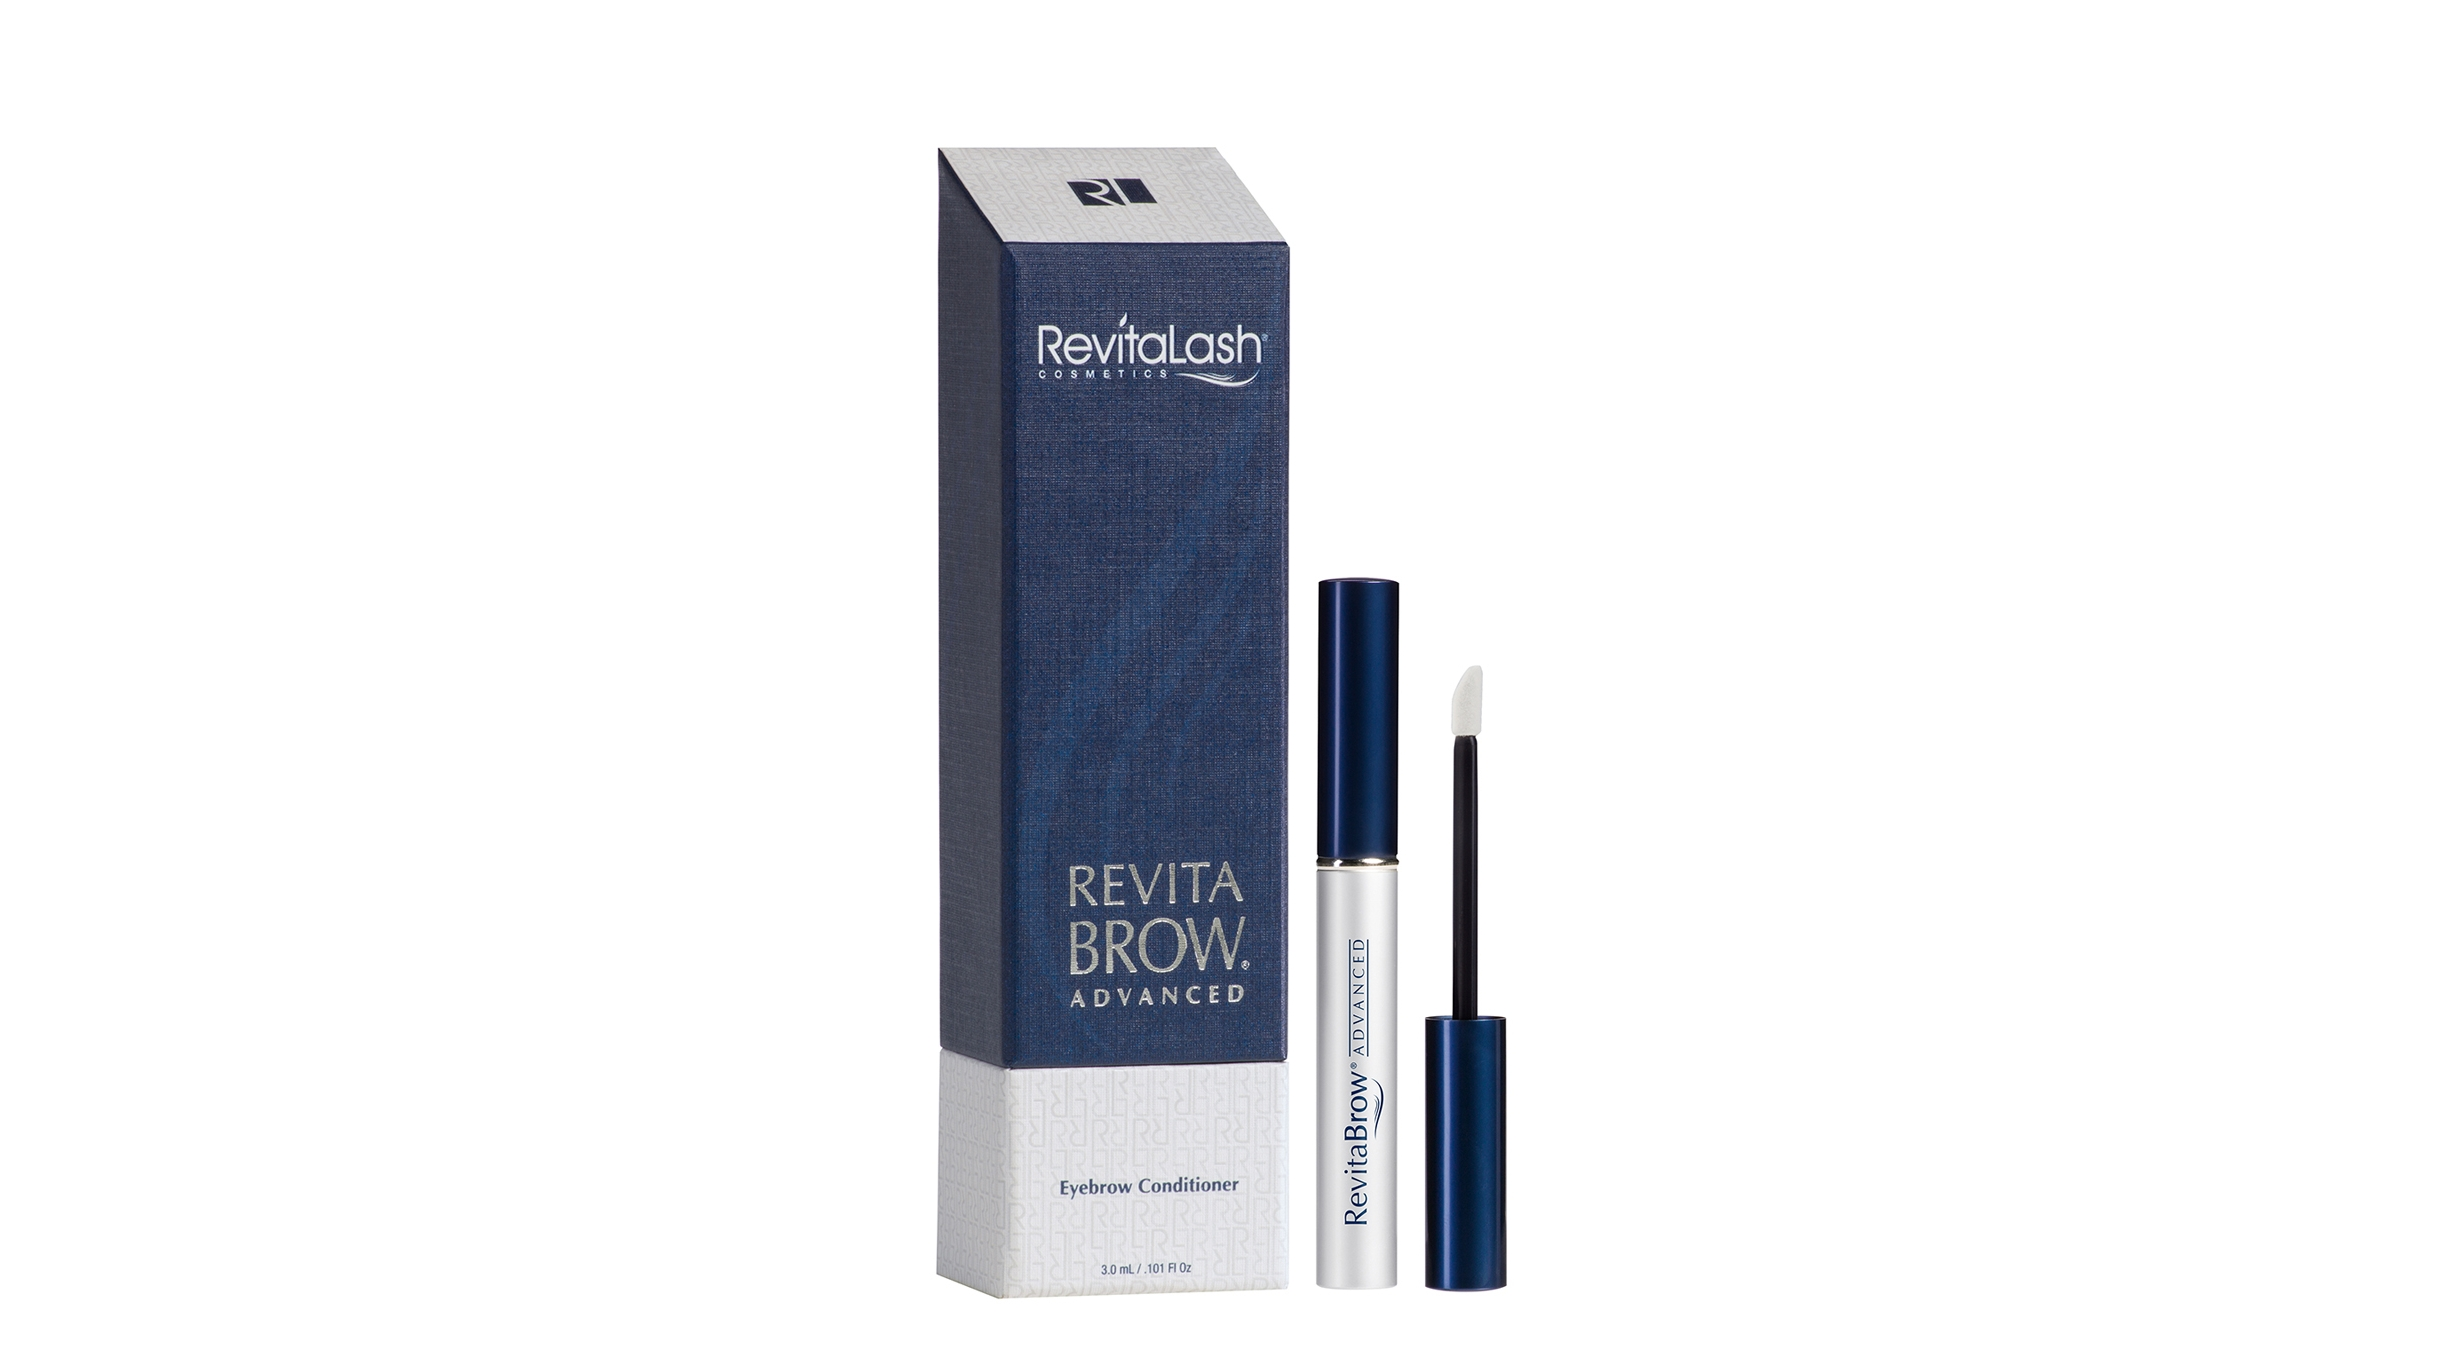 Revitalash Revitabrow 3ml Harvey Nichols